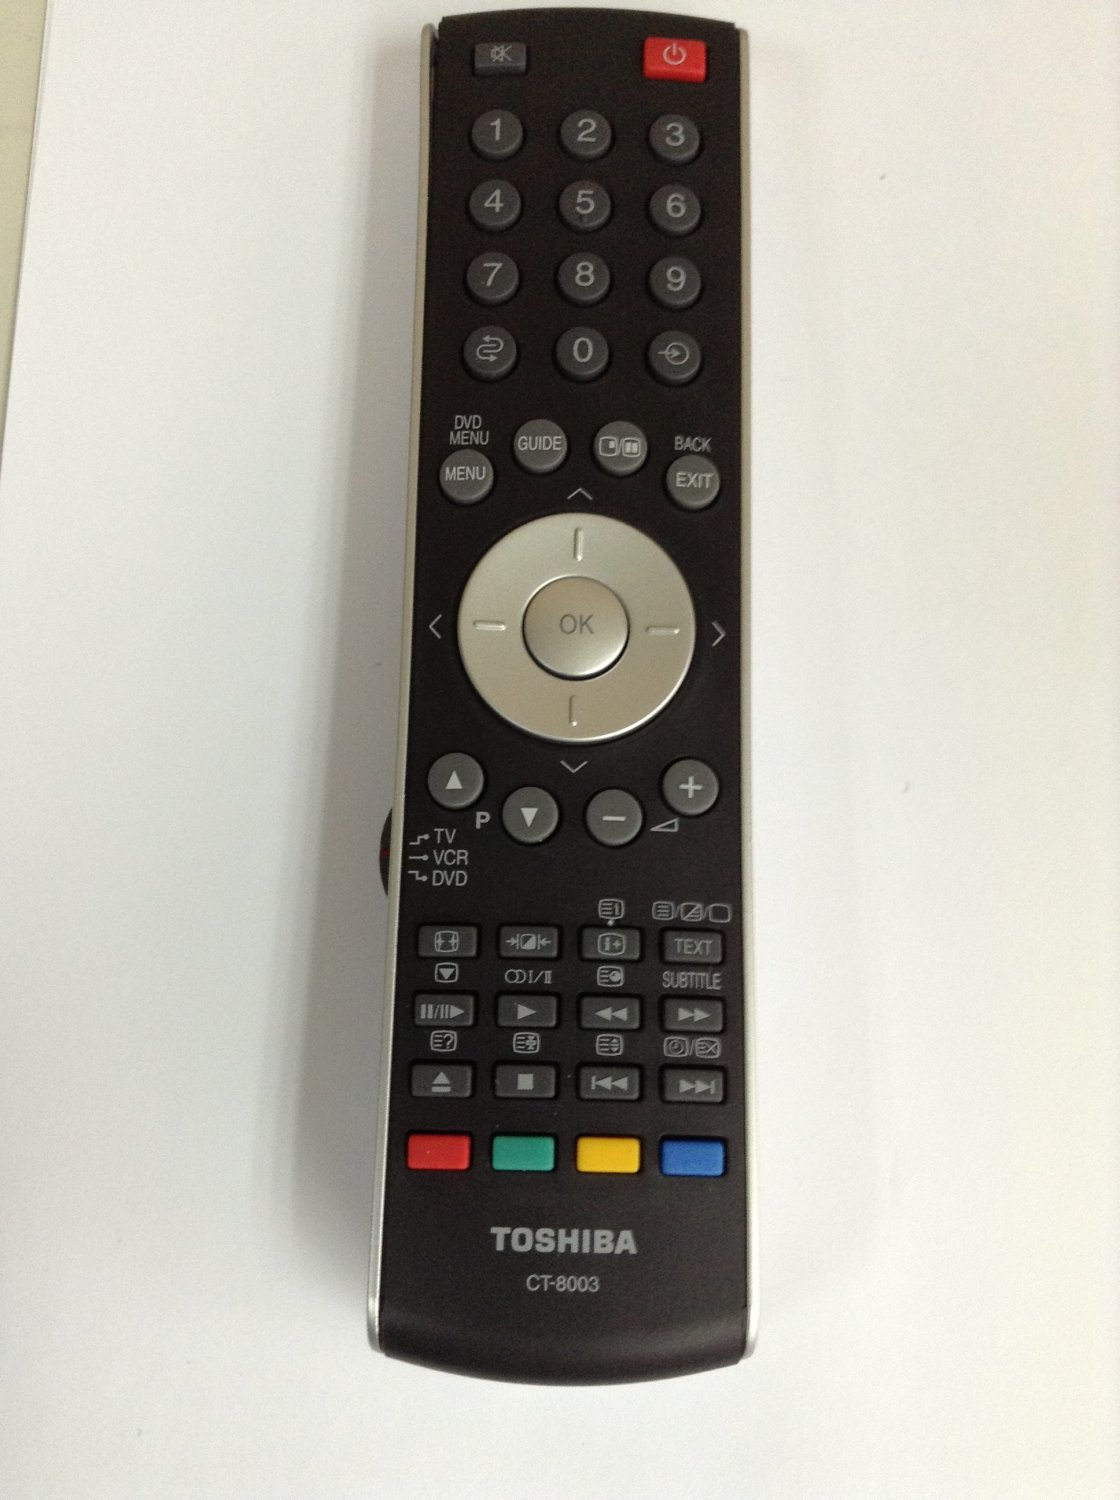 REMOTE CONTROL FOR TOSHIBA TV CT-877